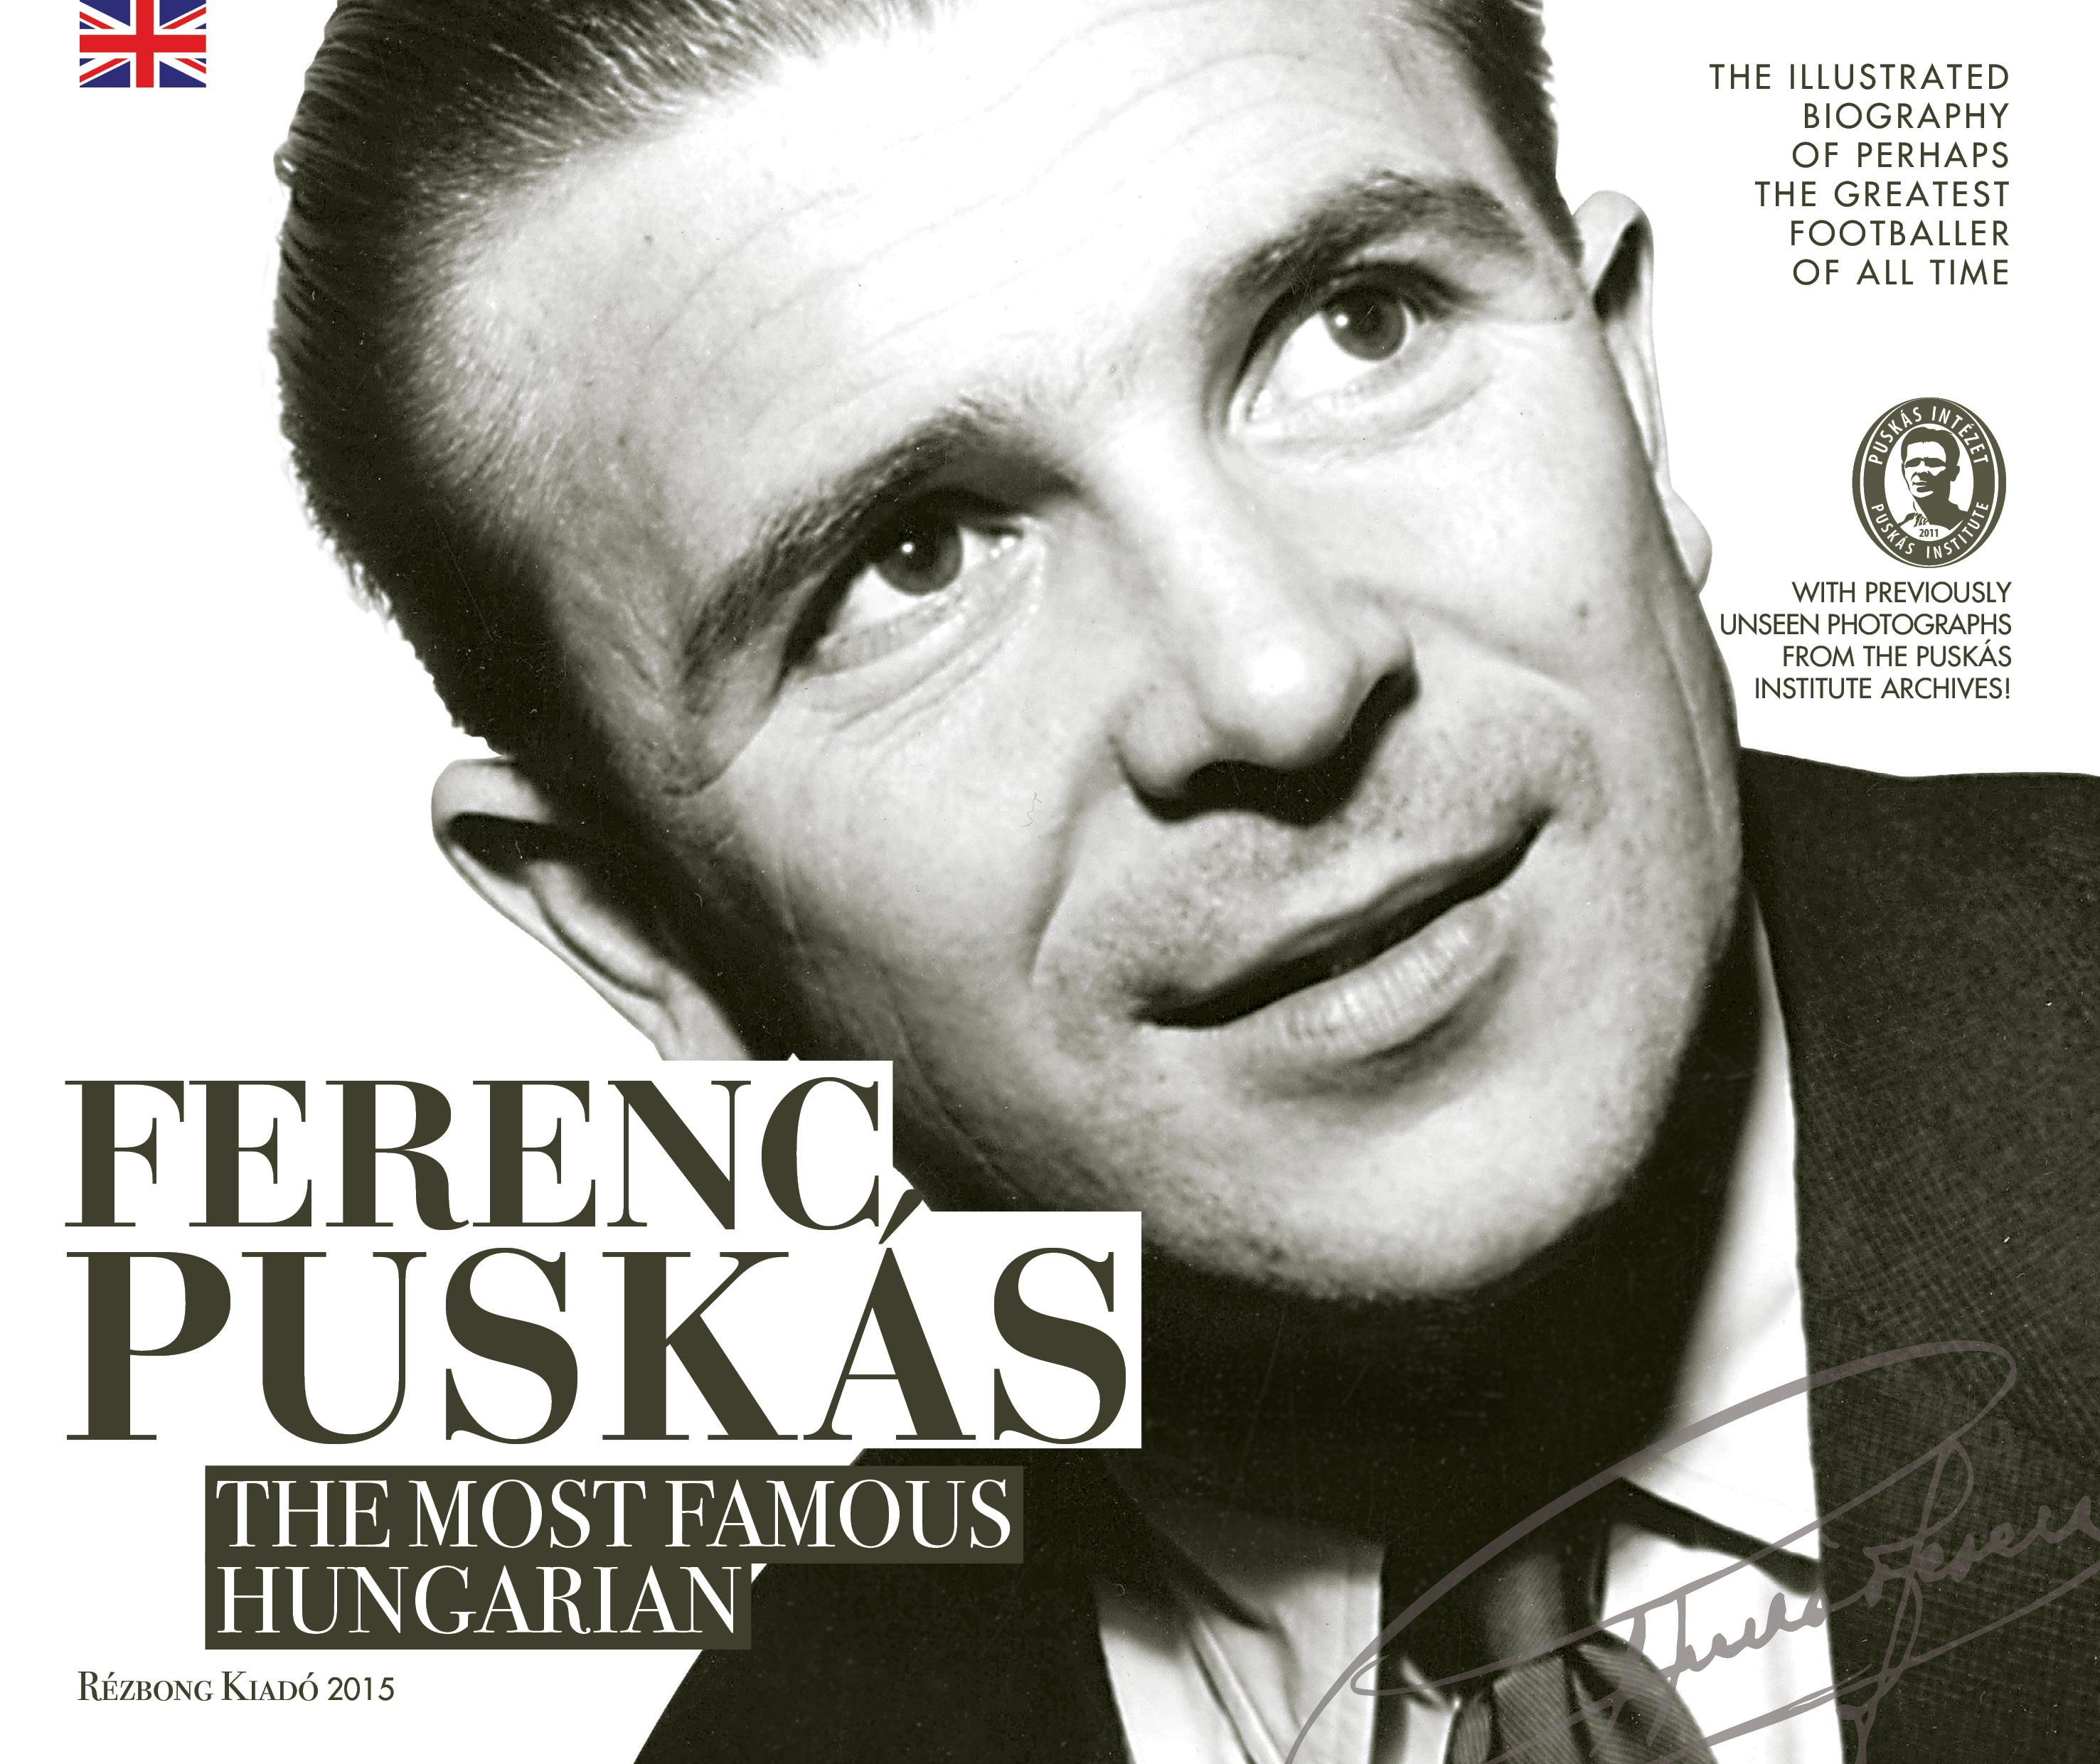 FERENC PUSKÁS - THE MOST FAMOUS HUNGARIAN